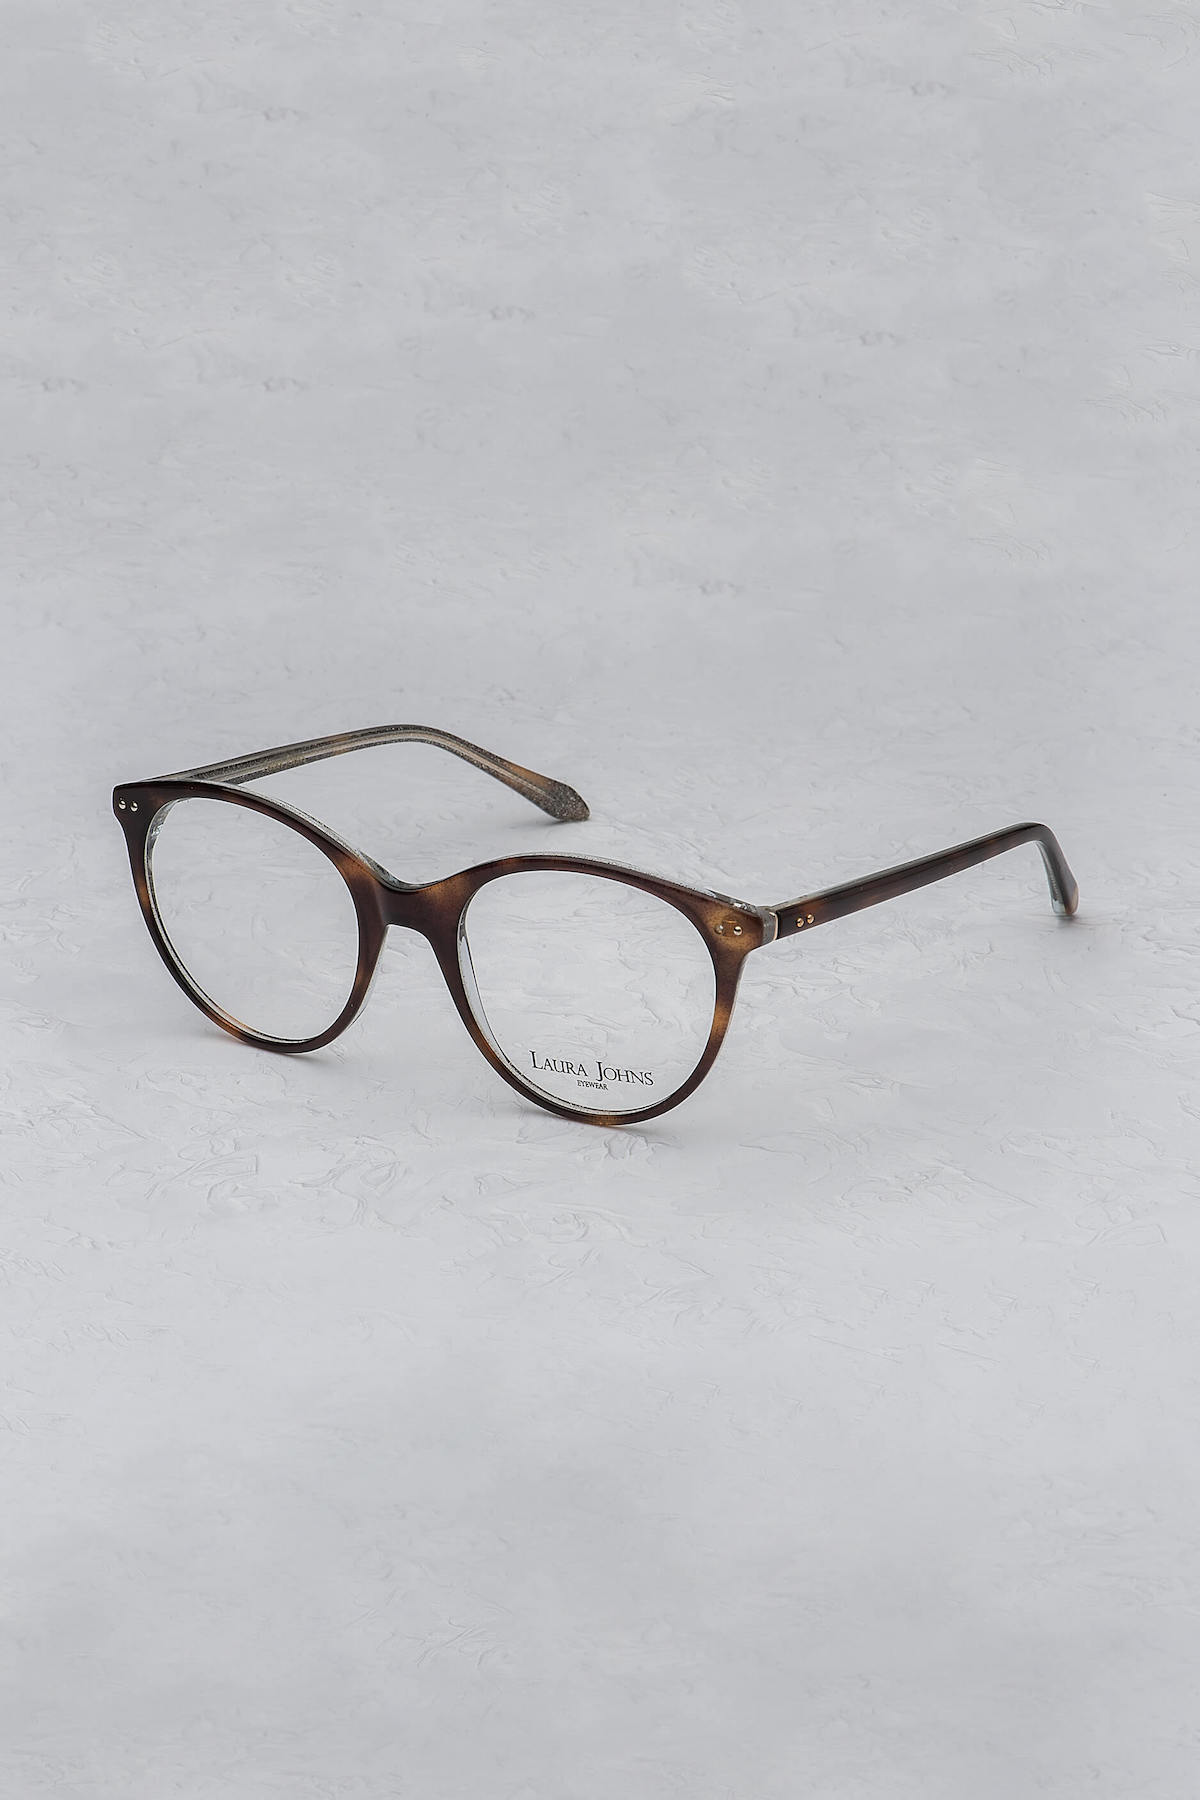 65305a9b37 Lunette de vue Laura Johns - LJ4022 Oversize - Optic Duroc